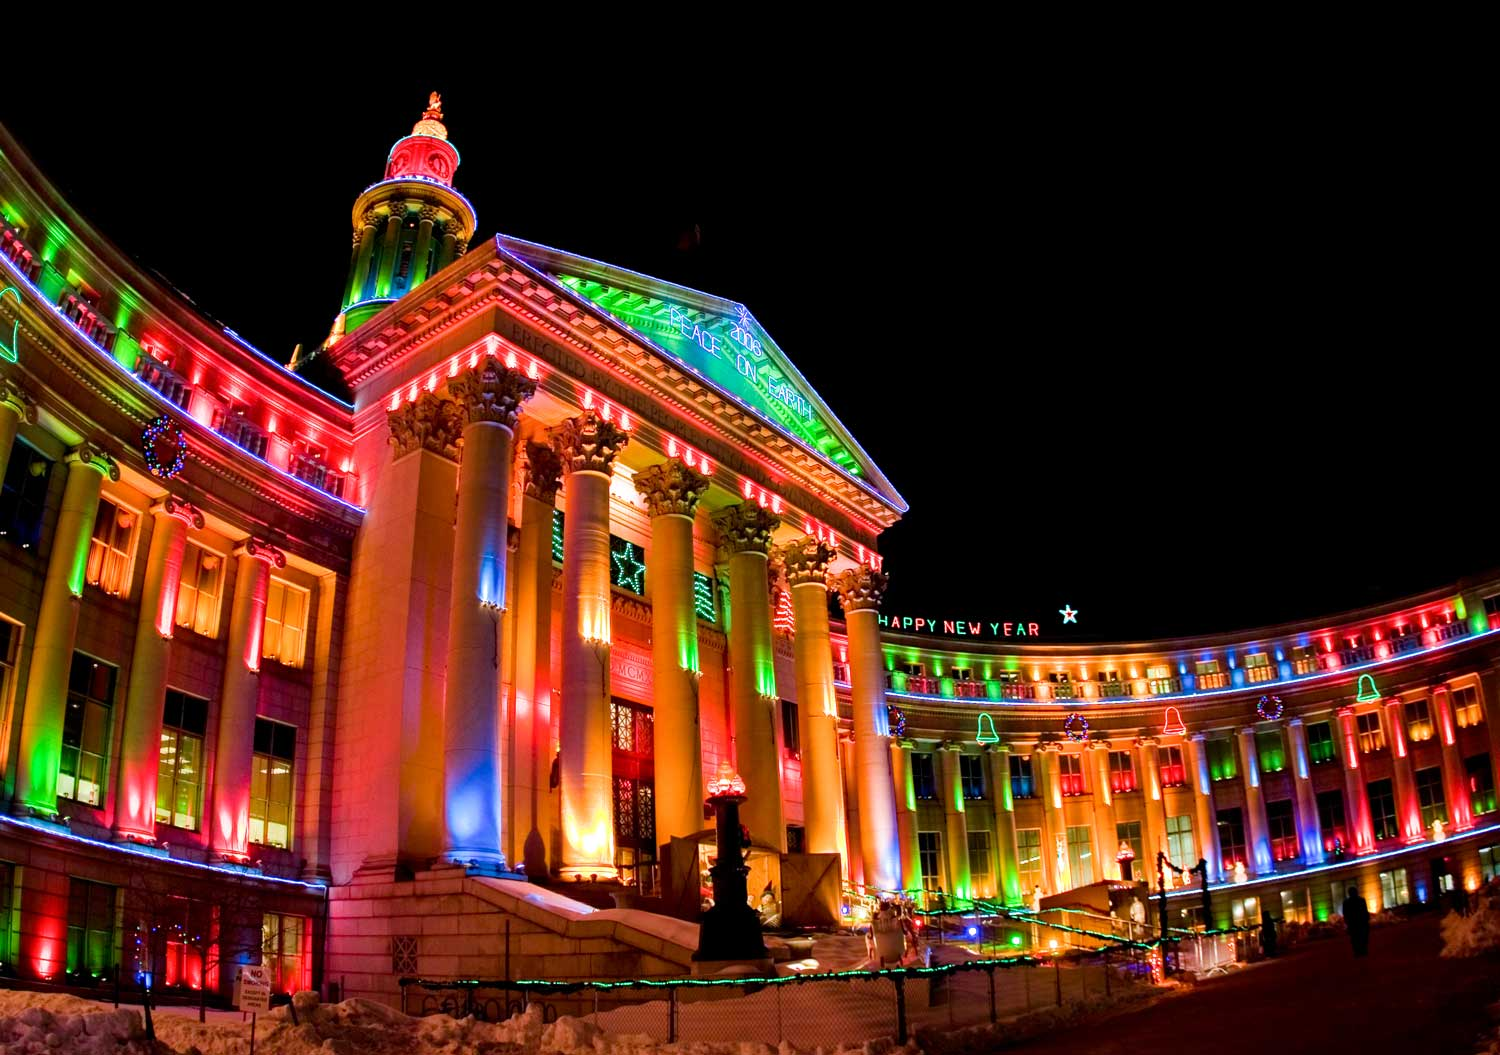 Claim To Fame Denver Invented Outdoor Christmas Lighting In The Early 1900s